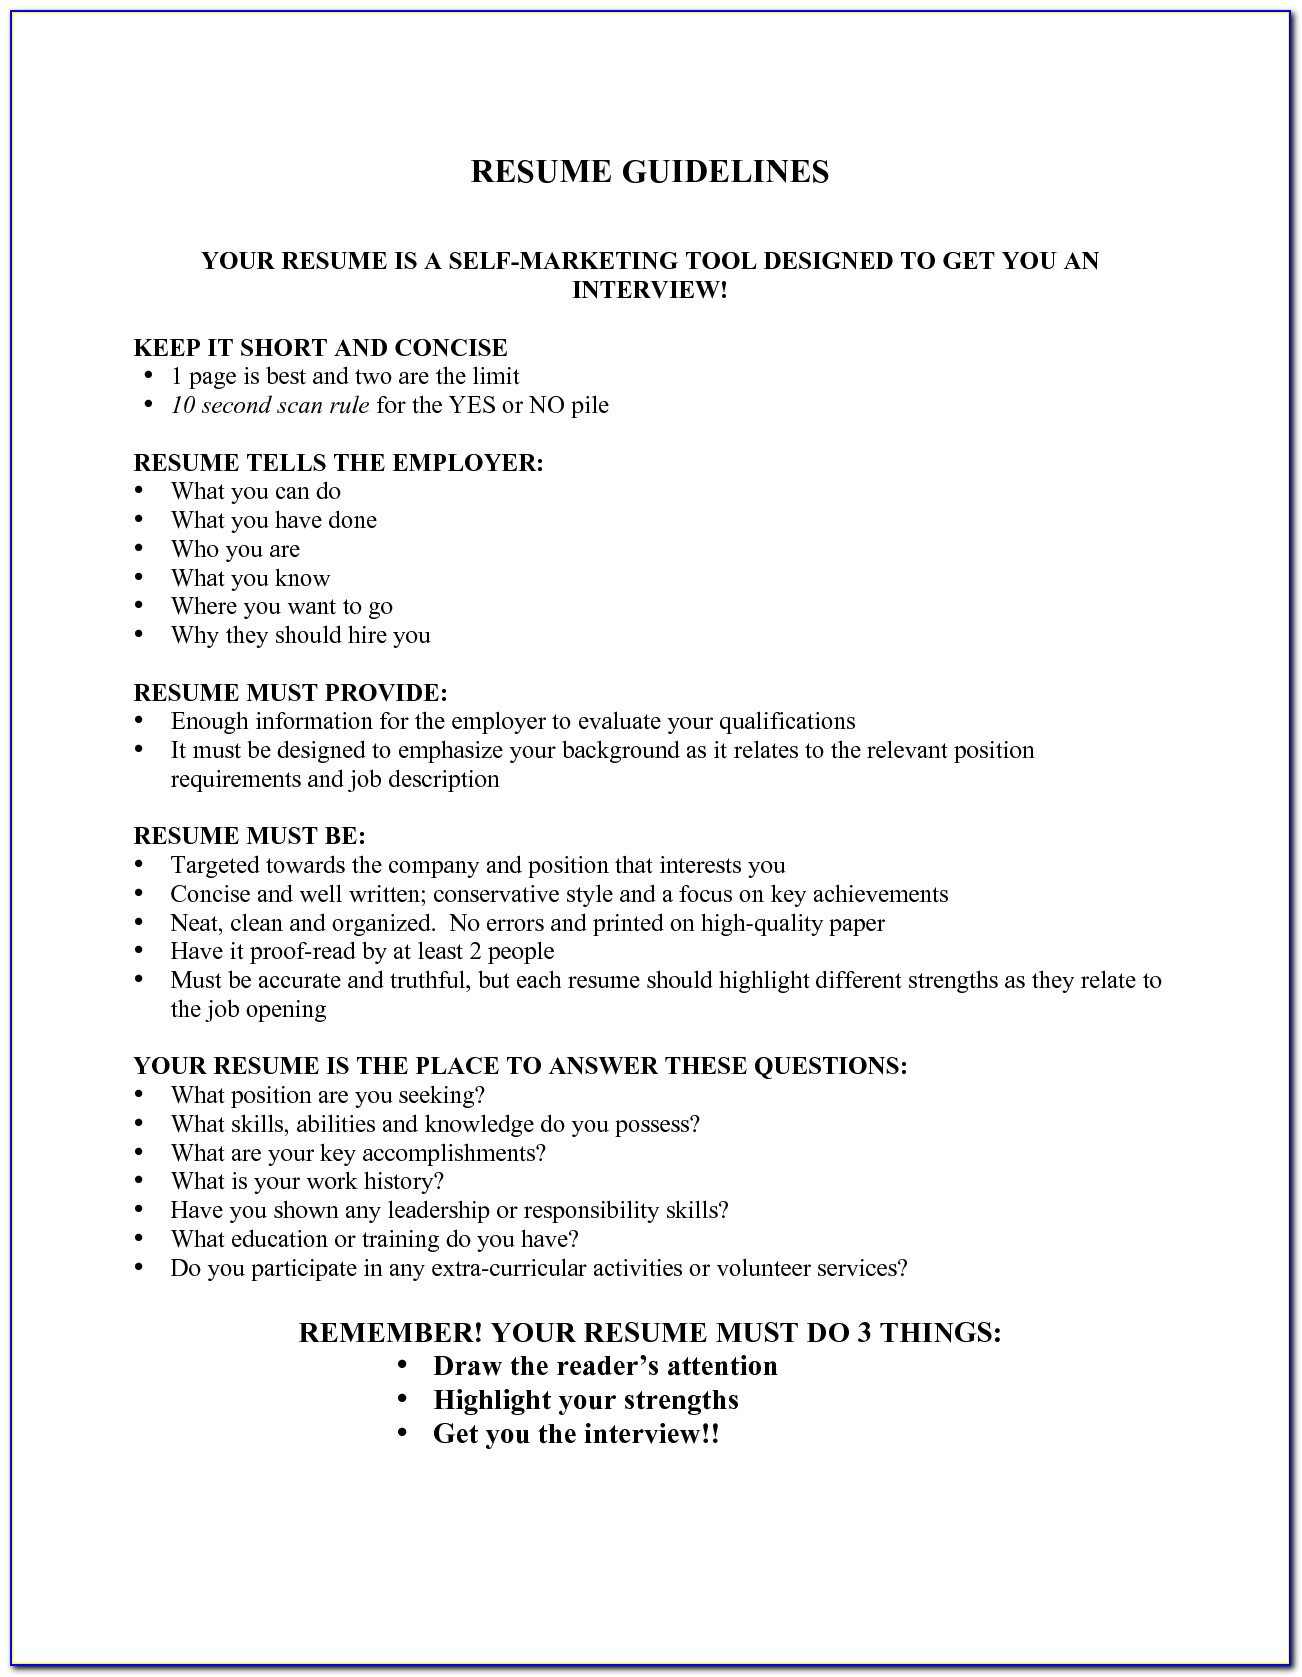 Guidelines For Resume Fieldstation.co With Resume Guidelines